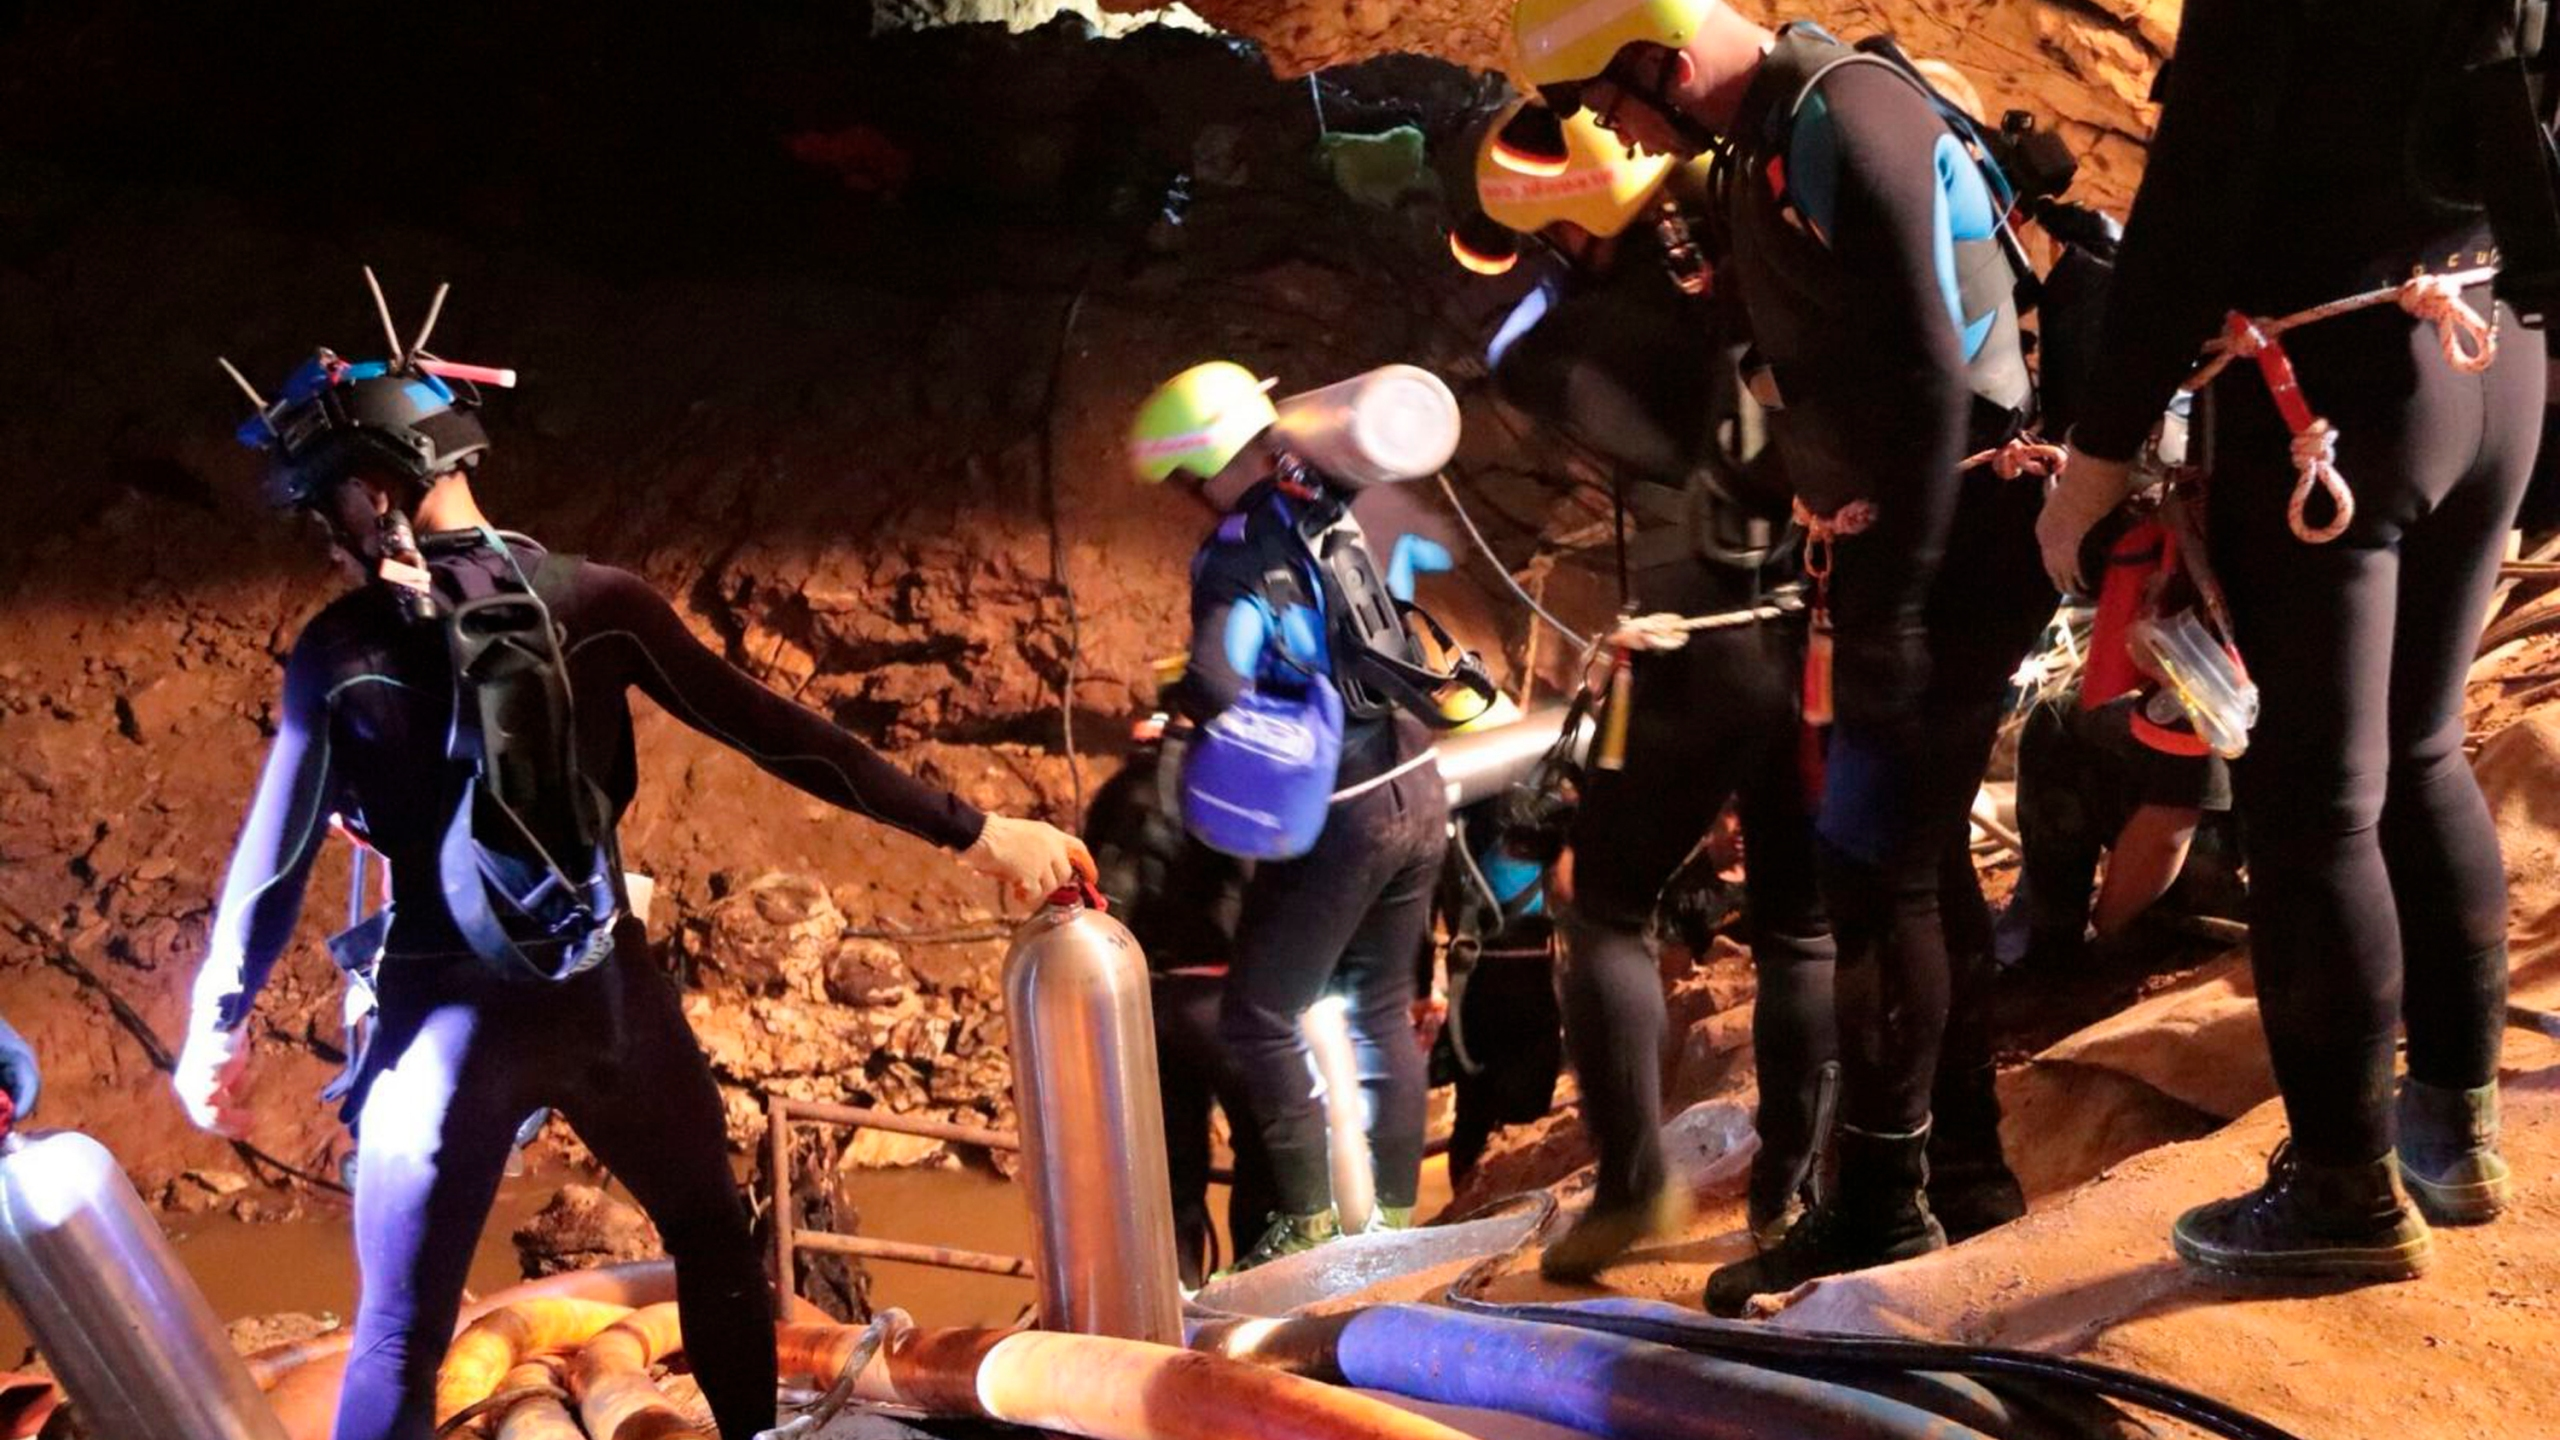 Thai cave rescue documentary to air on Discovery Channel